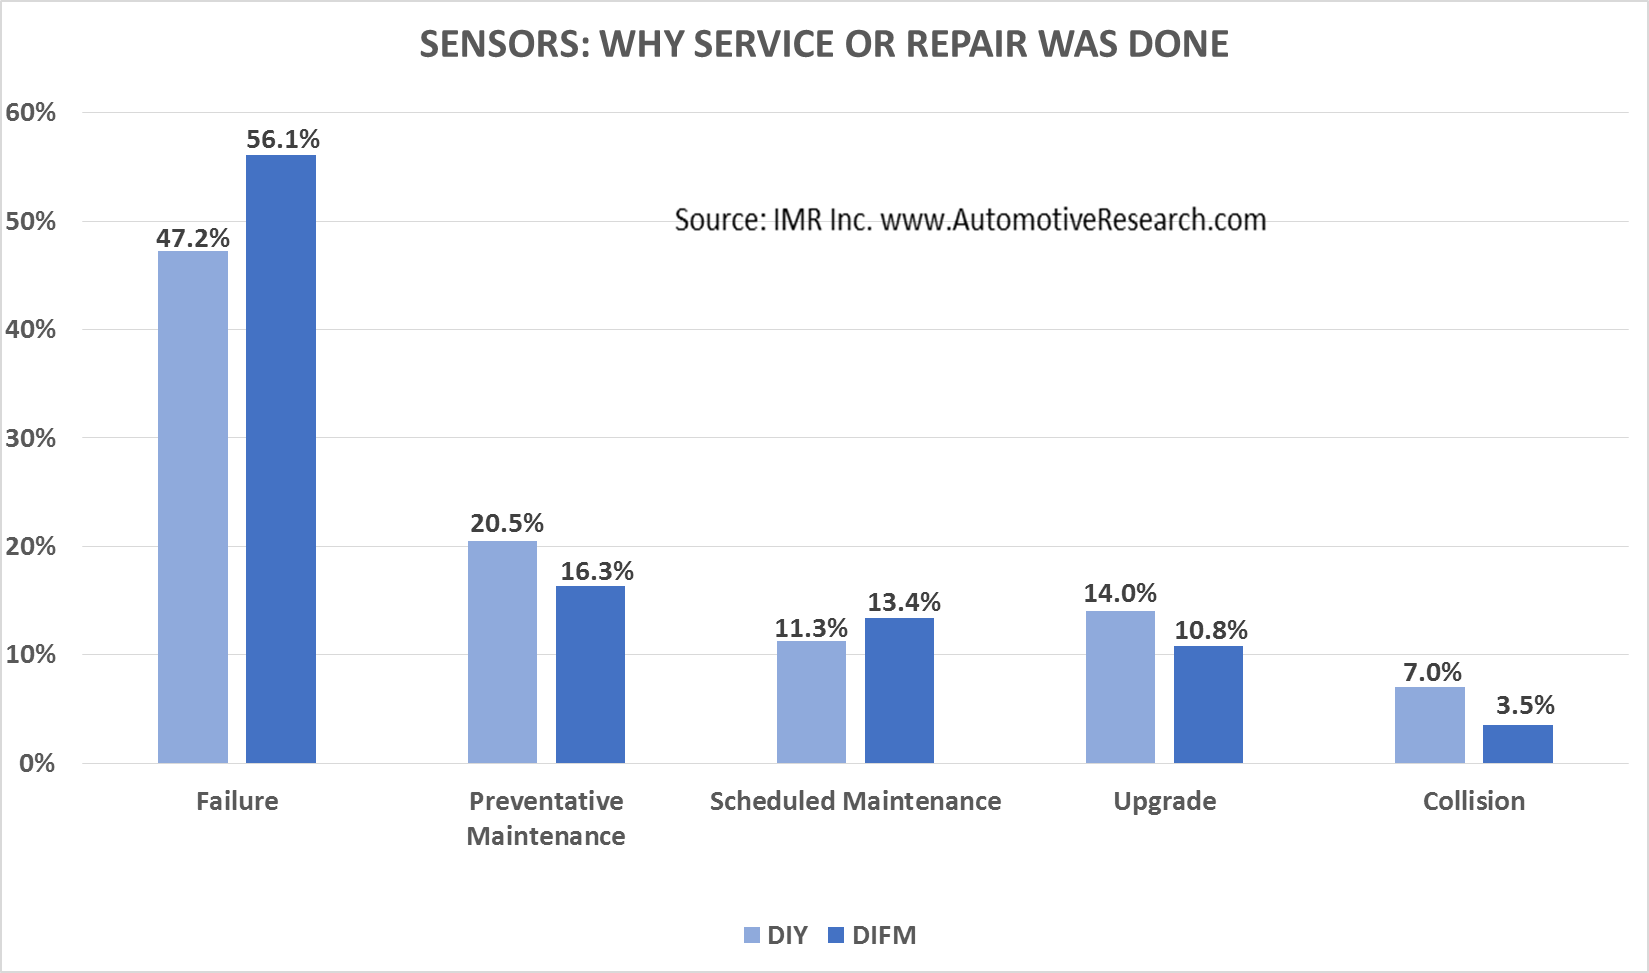 Automotive Market Research Study - Consumer Reason For Vehicle Sensor Service